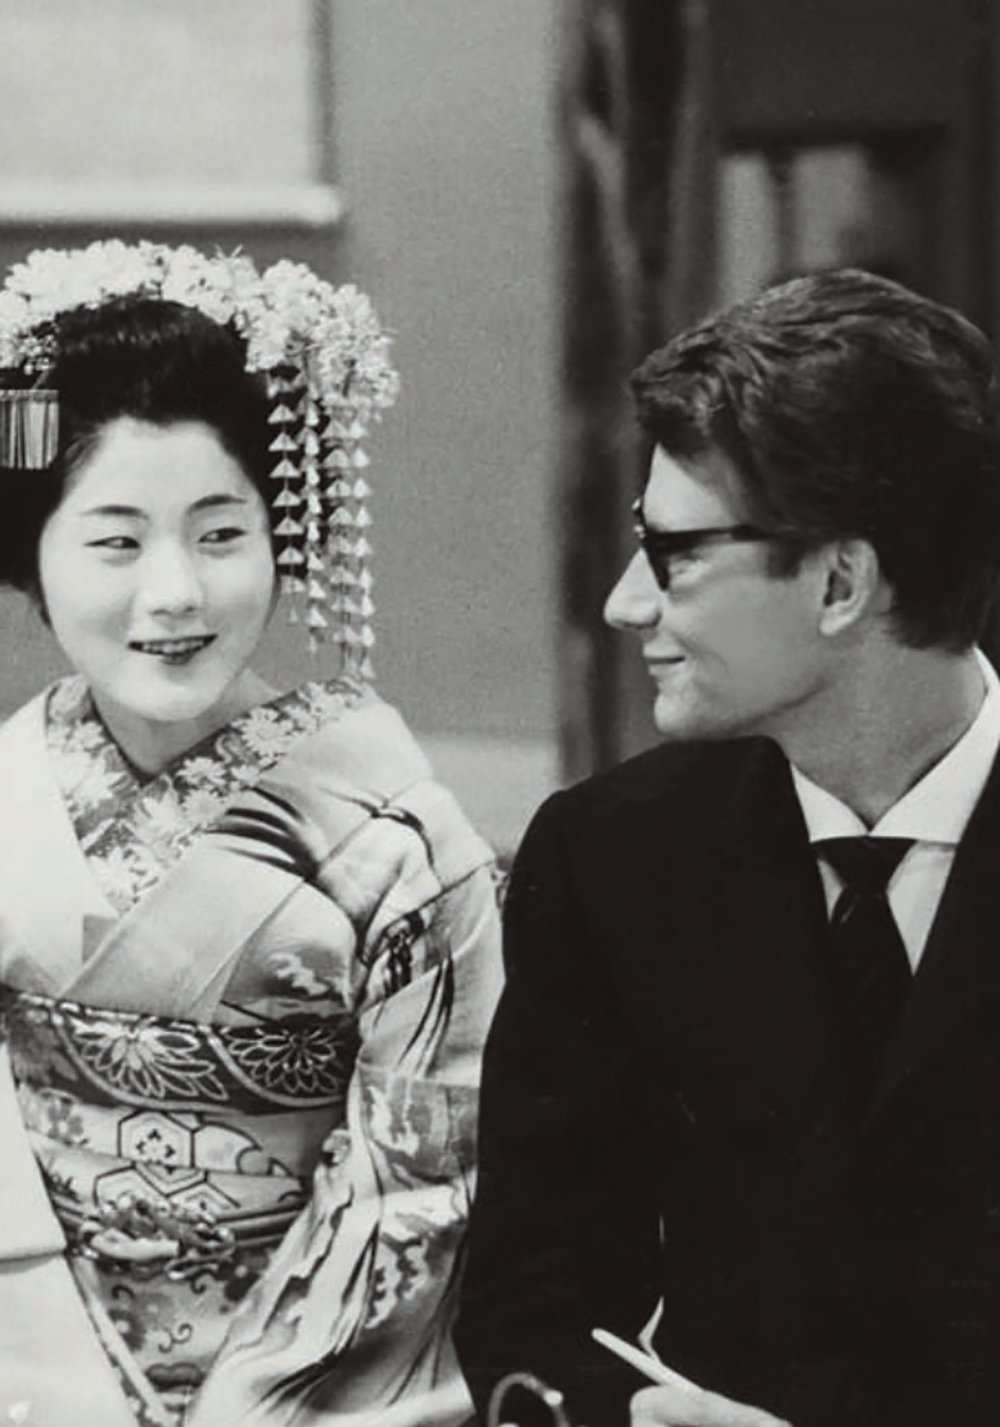 Yves Saint Laurent and a courtesan wearing traditional garments during the designer's first trip to Kyoto, Japan in April 1963